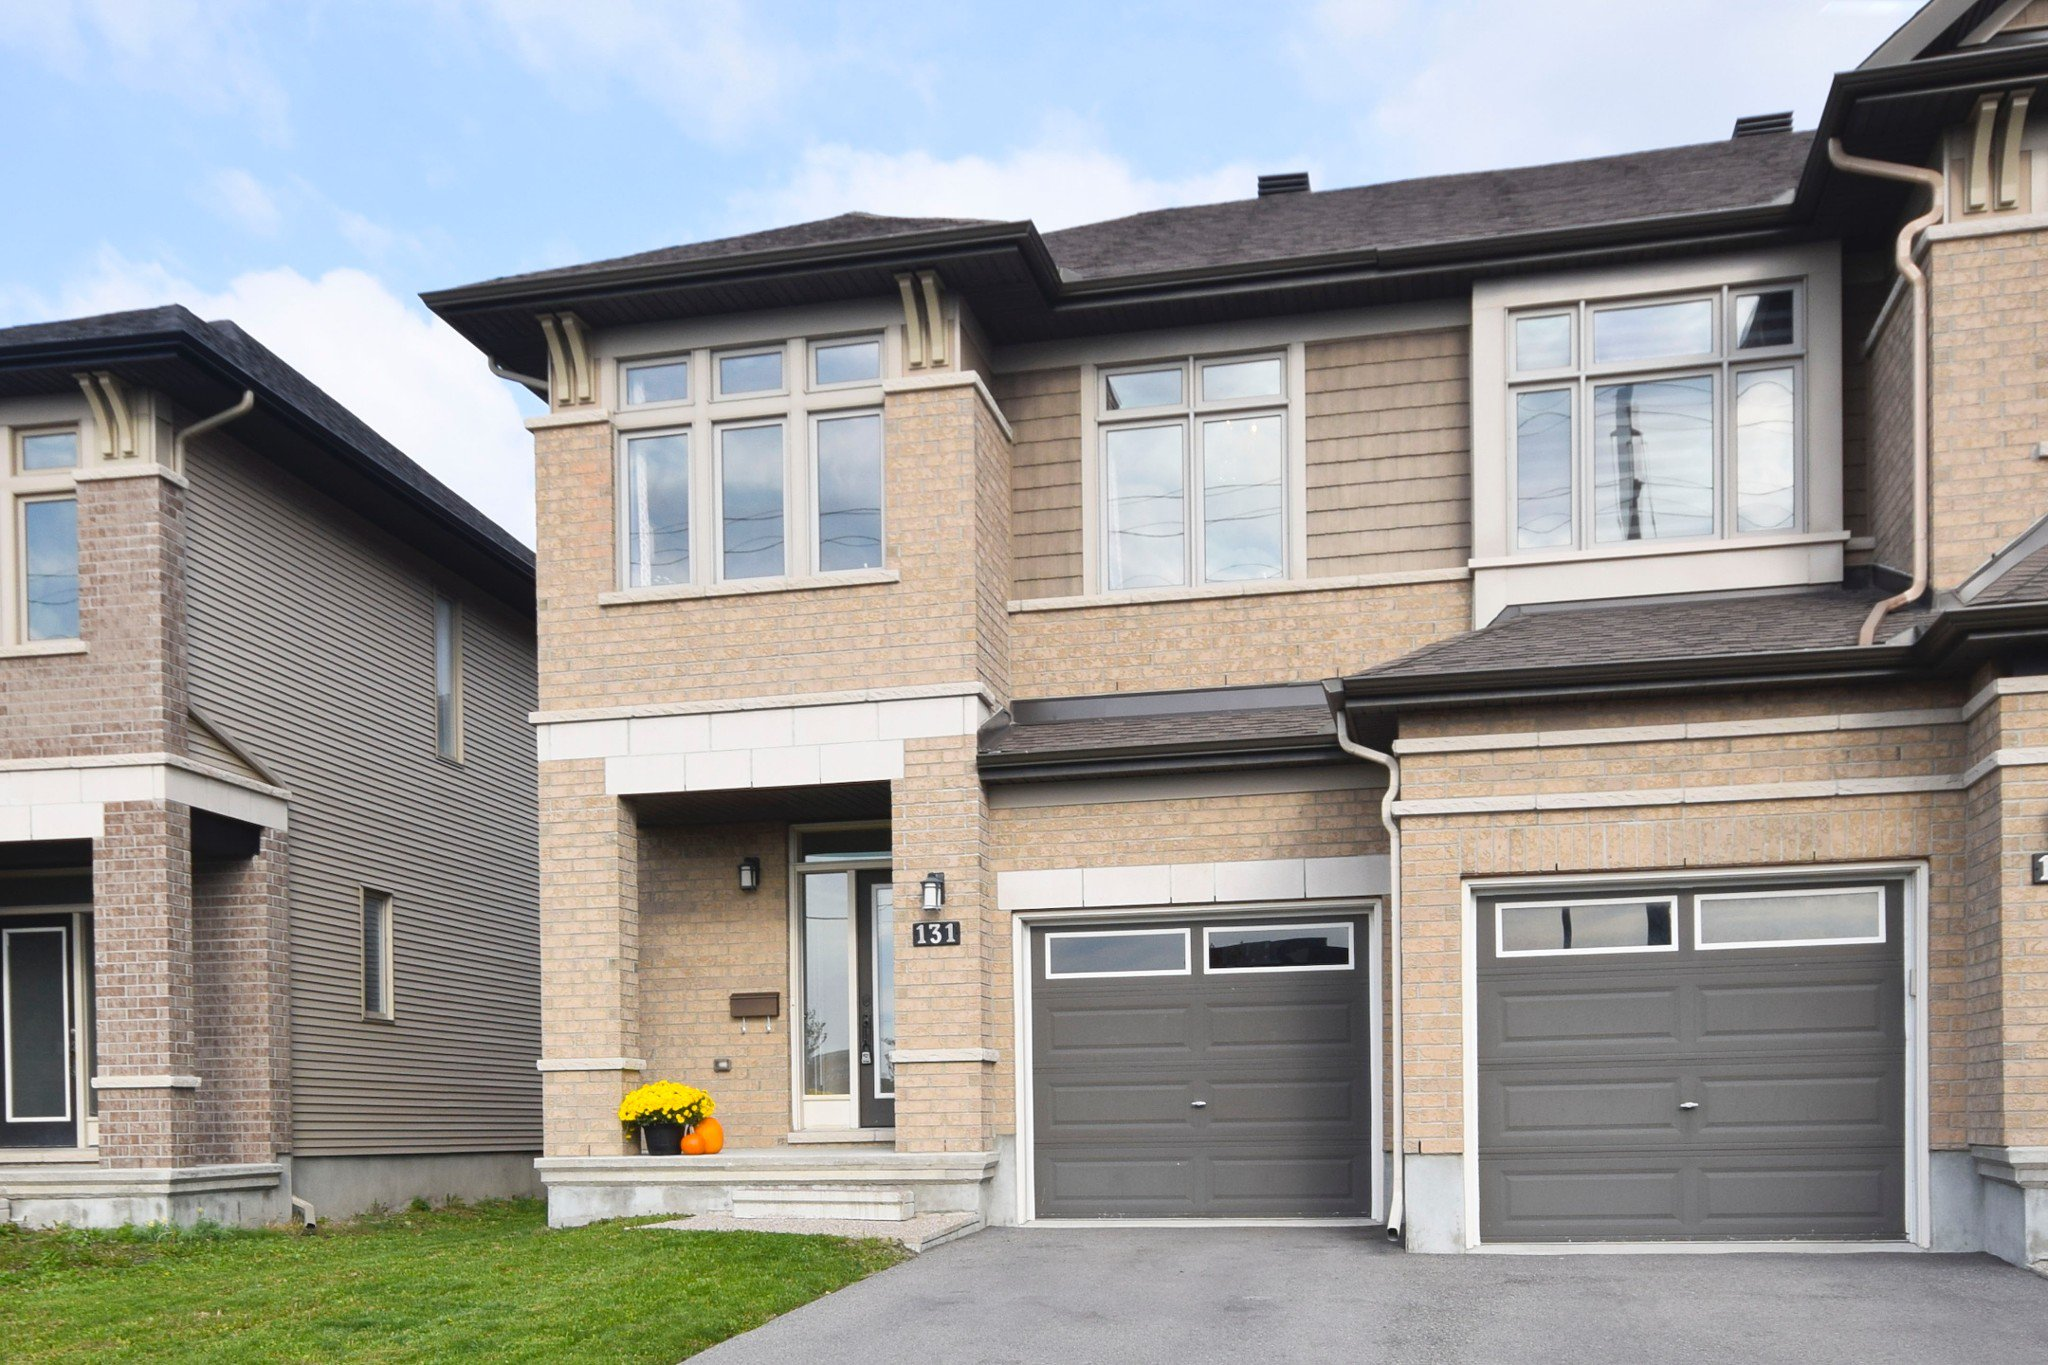 Photo 2: Photos: 131 Popplewell Crescent in Ottawa: Cedargrove / Fraserdale House for sale (Barrhaven)  : MLS®# 1130335